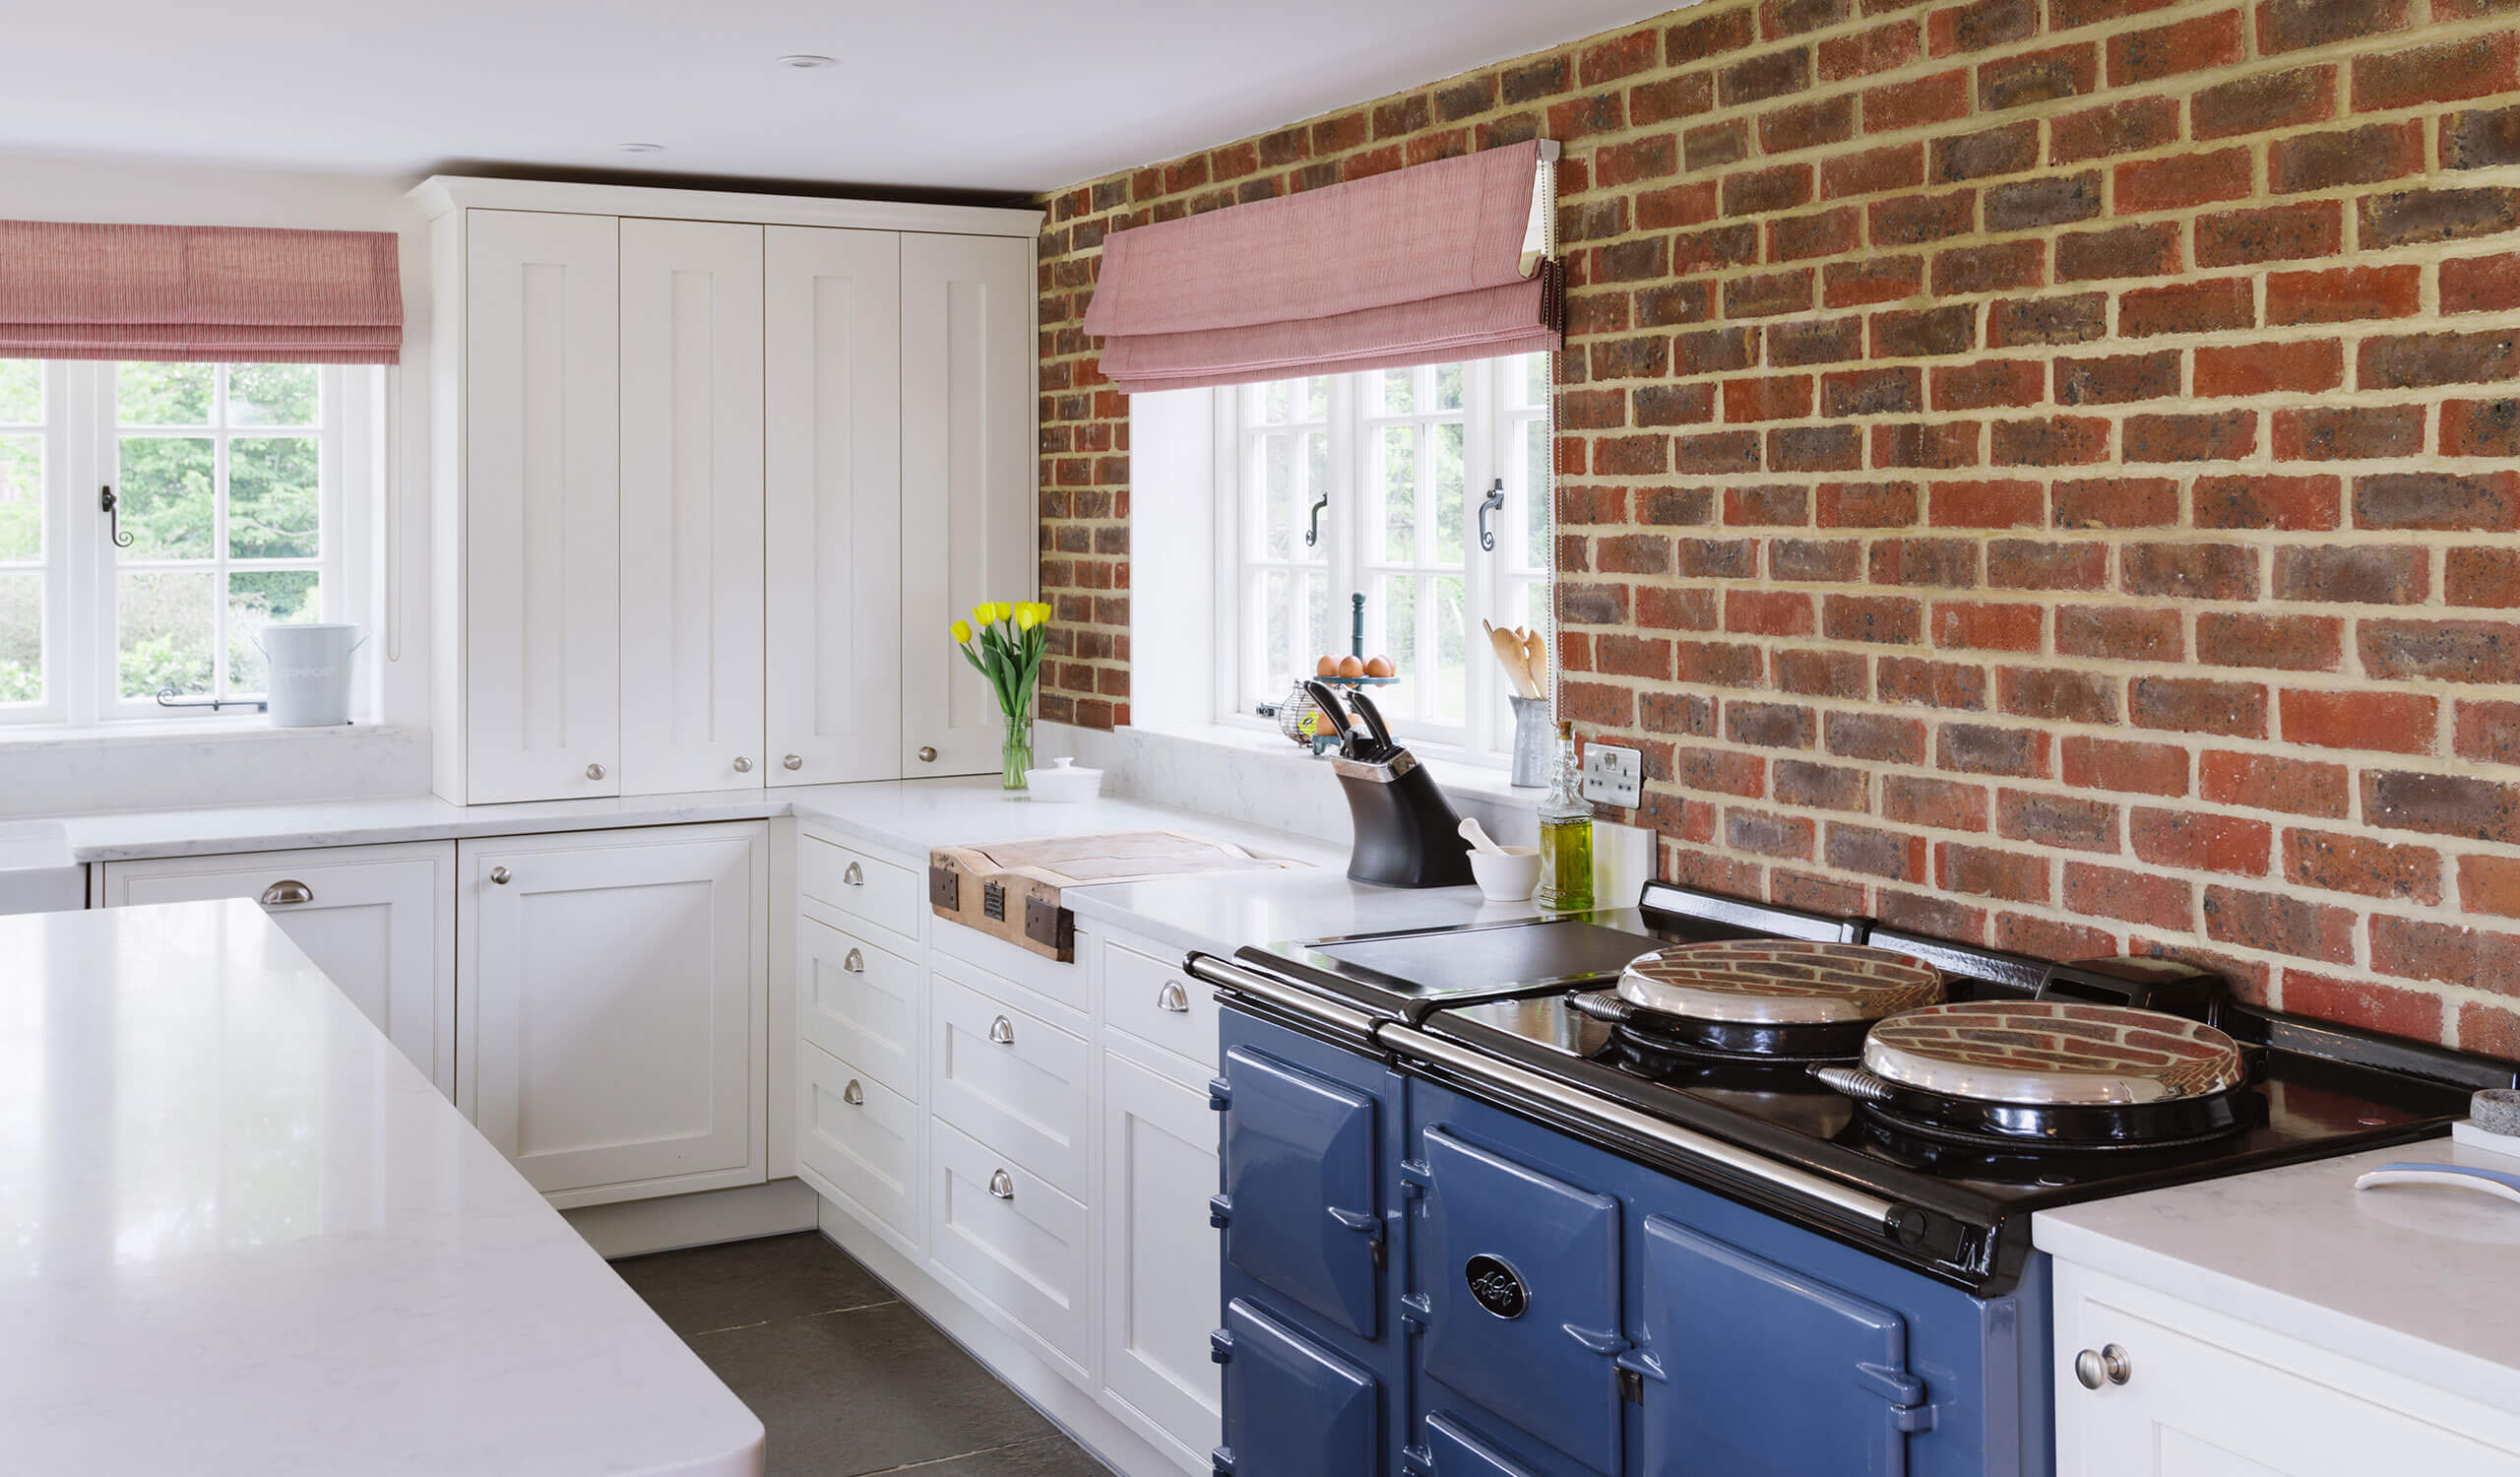 Traditional Kitchen Design cooking appliances